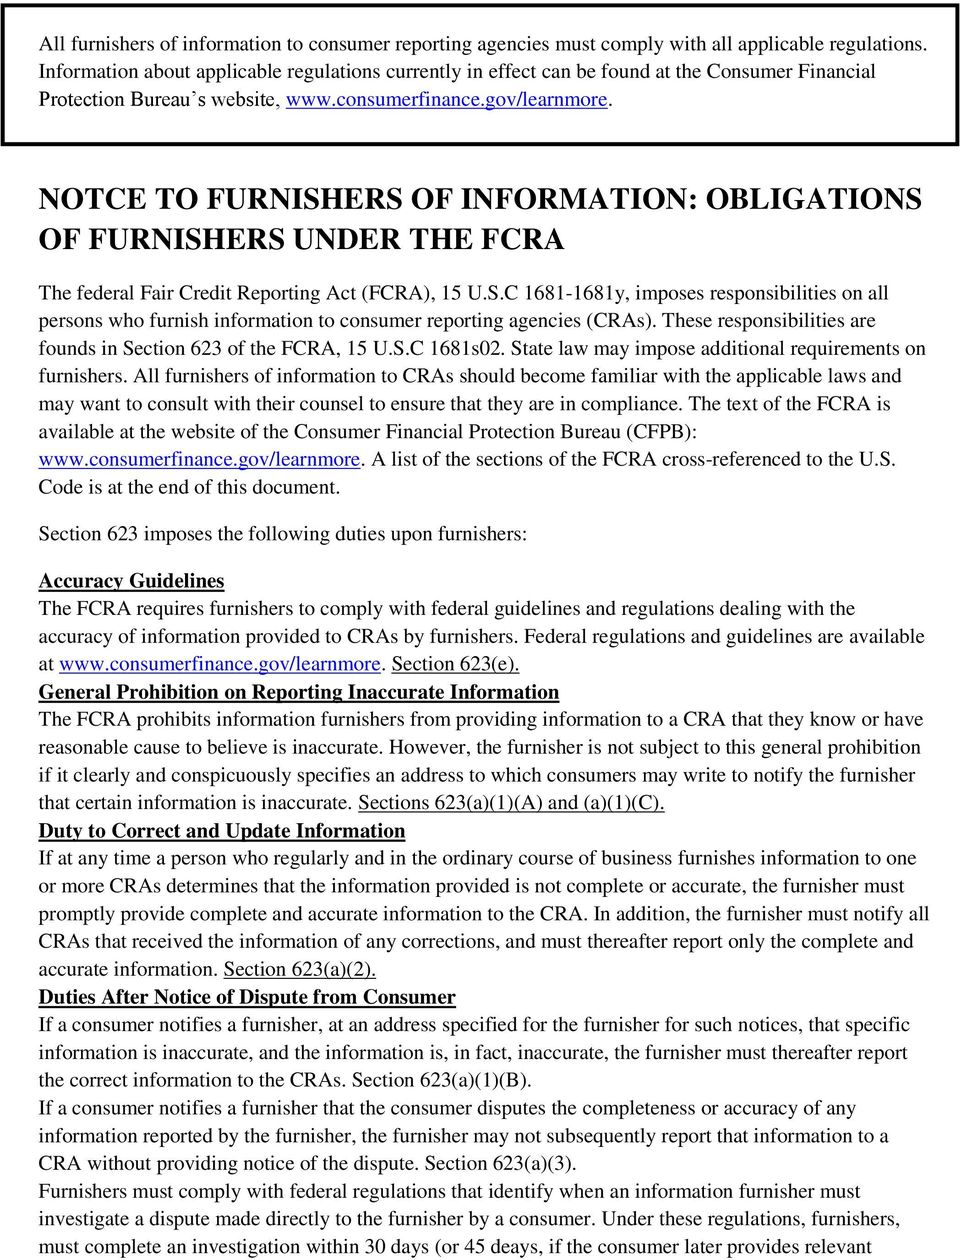 NOTCE TO FURNISHERS OF INFORMATION: OBLIGATIONS OF FURNISHERS UNDER THE FCRA The federal Fair Credit Reporting Act (FCRA), 15 U.S.C 1681-1681y, imposes responsibilities on all persons who furnish information to consumer reporting agencies (CRAs).